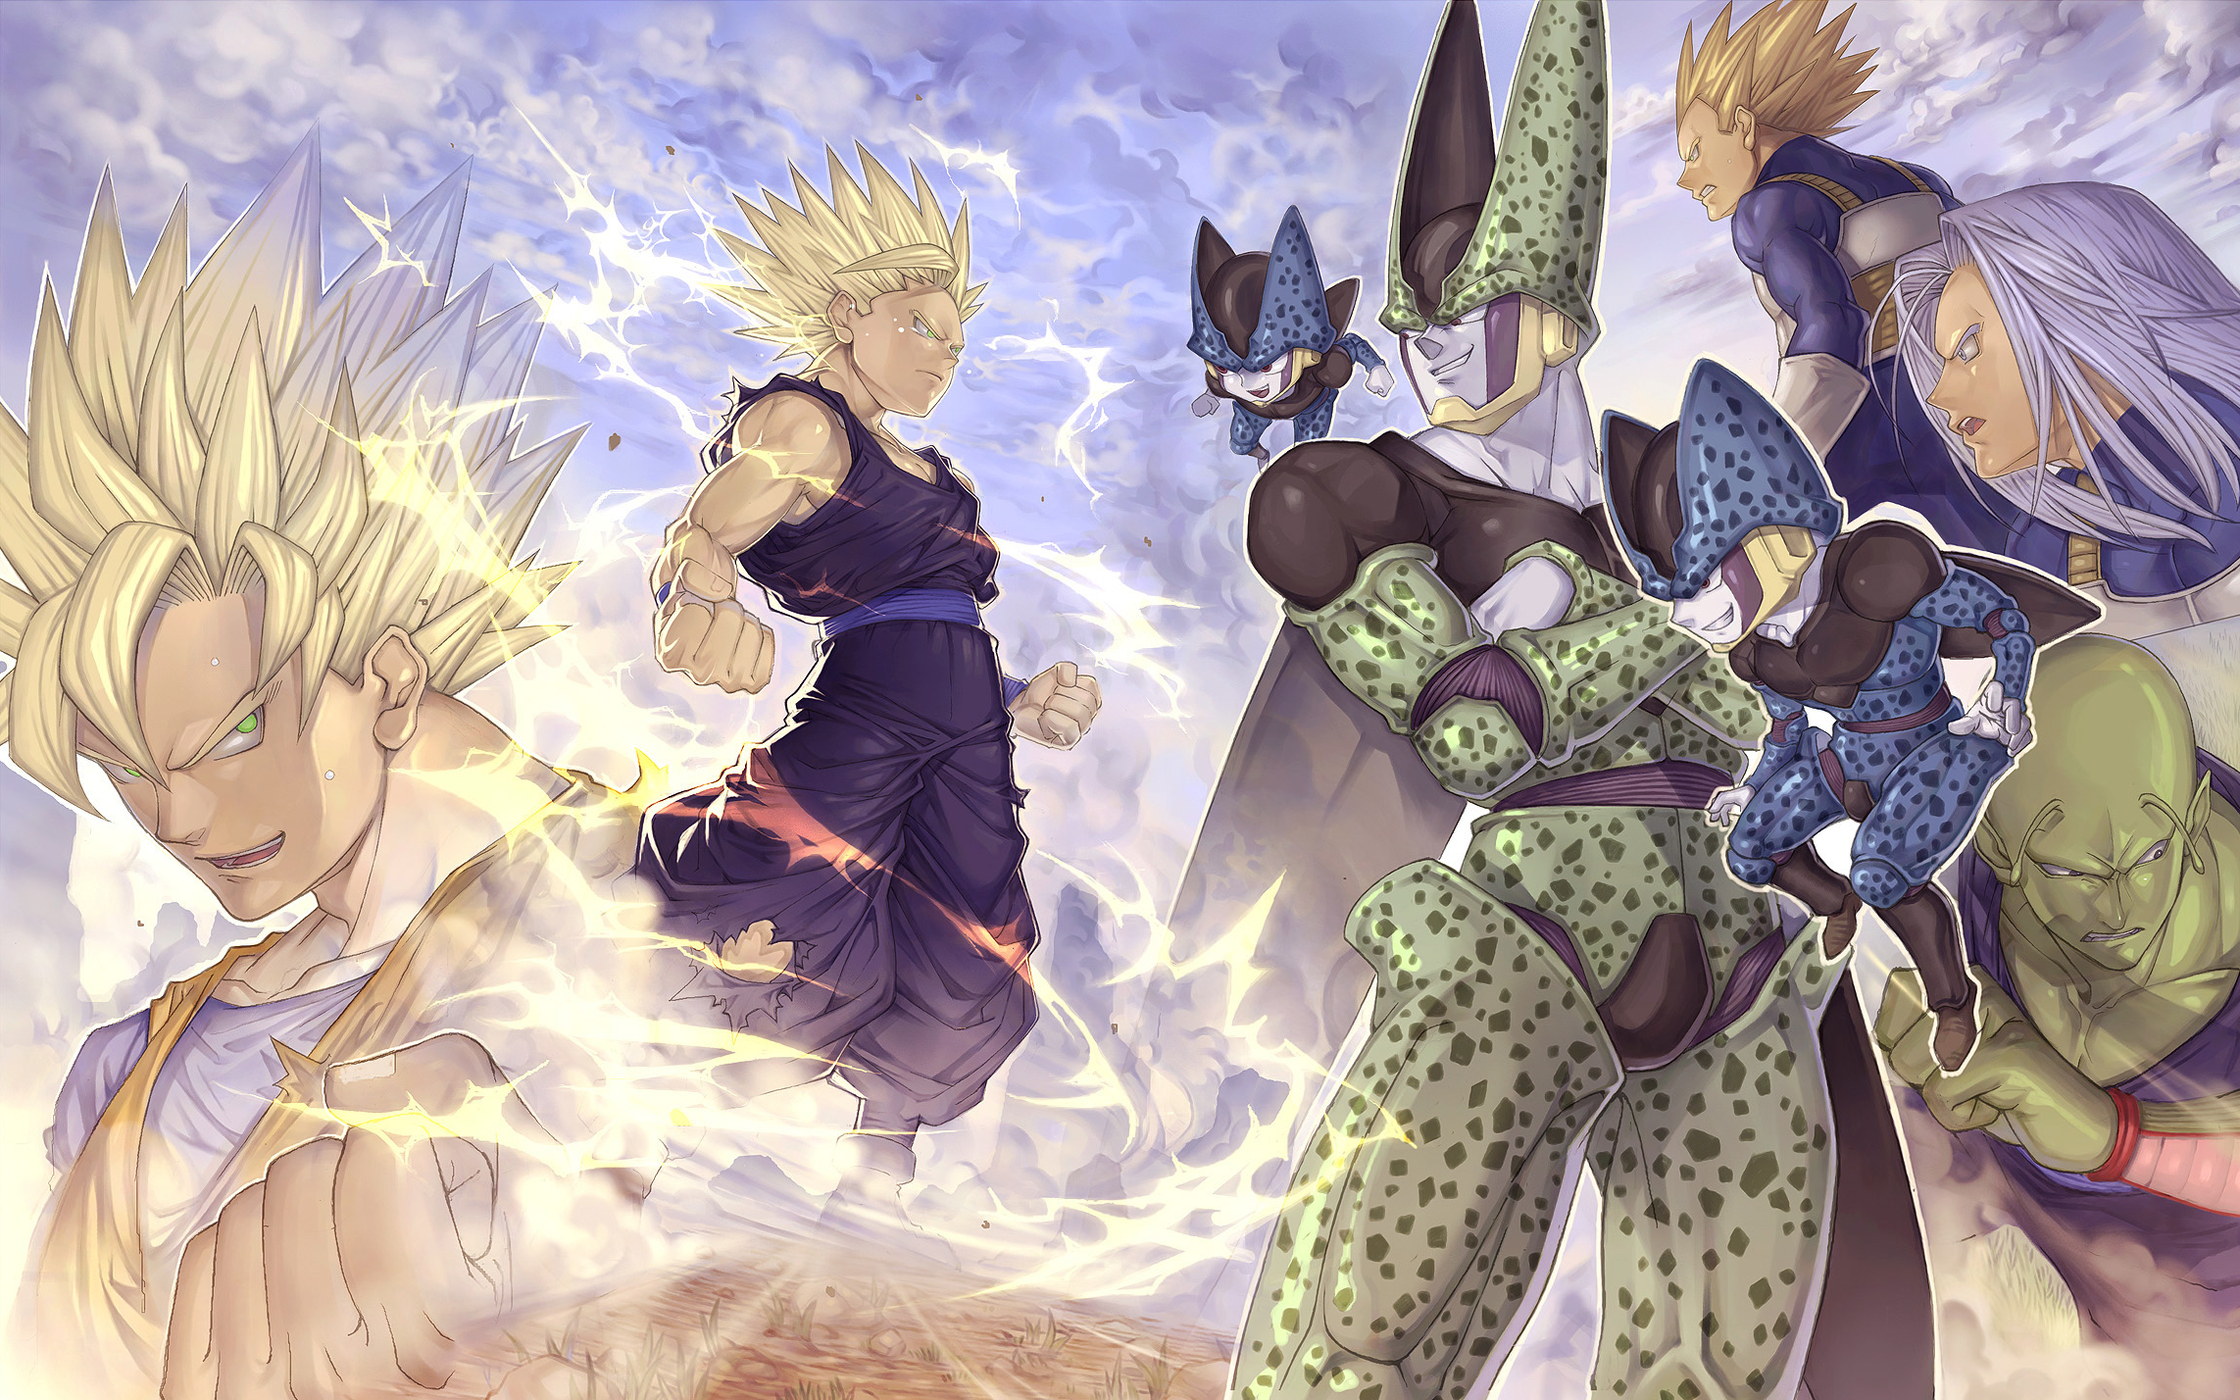 662 dragon ball z hd wallpapers | background images - wallpaper abyss